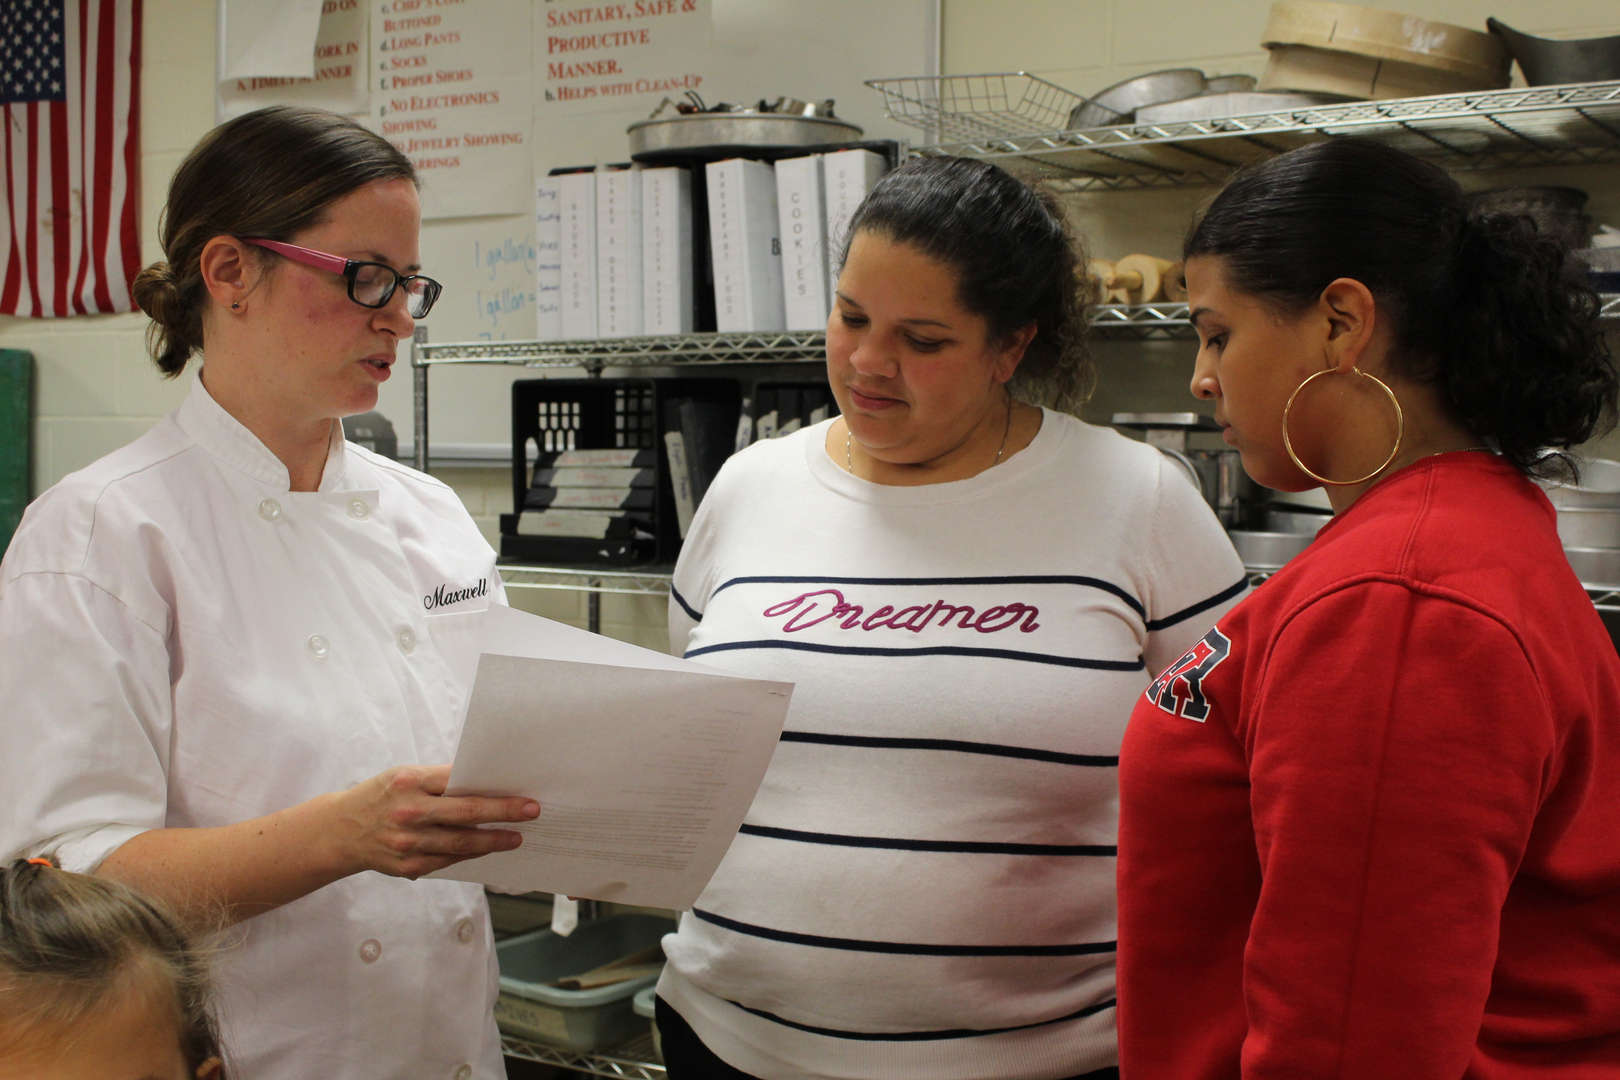 Chef speaks with mother and student